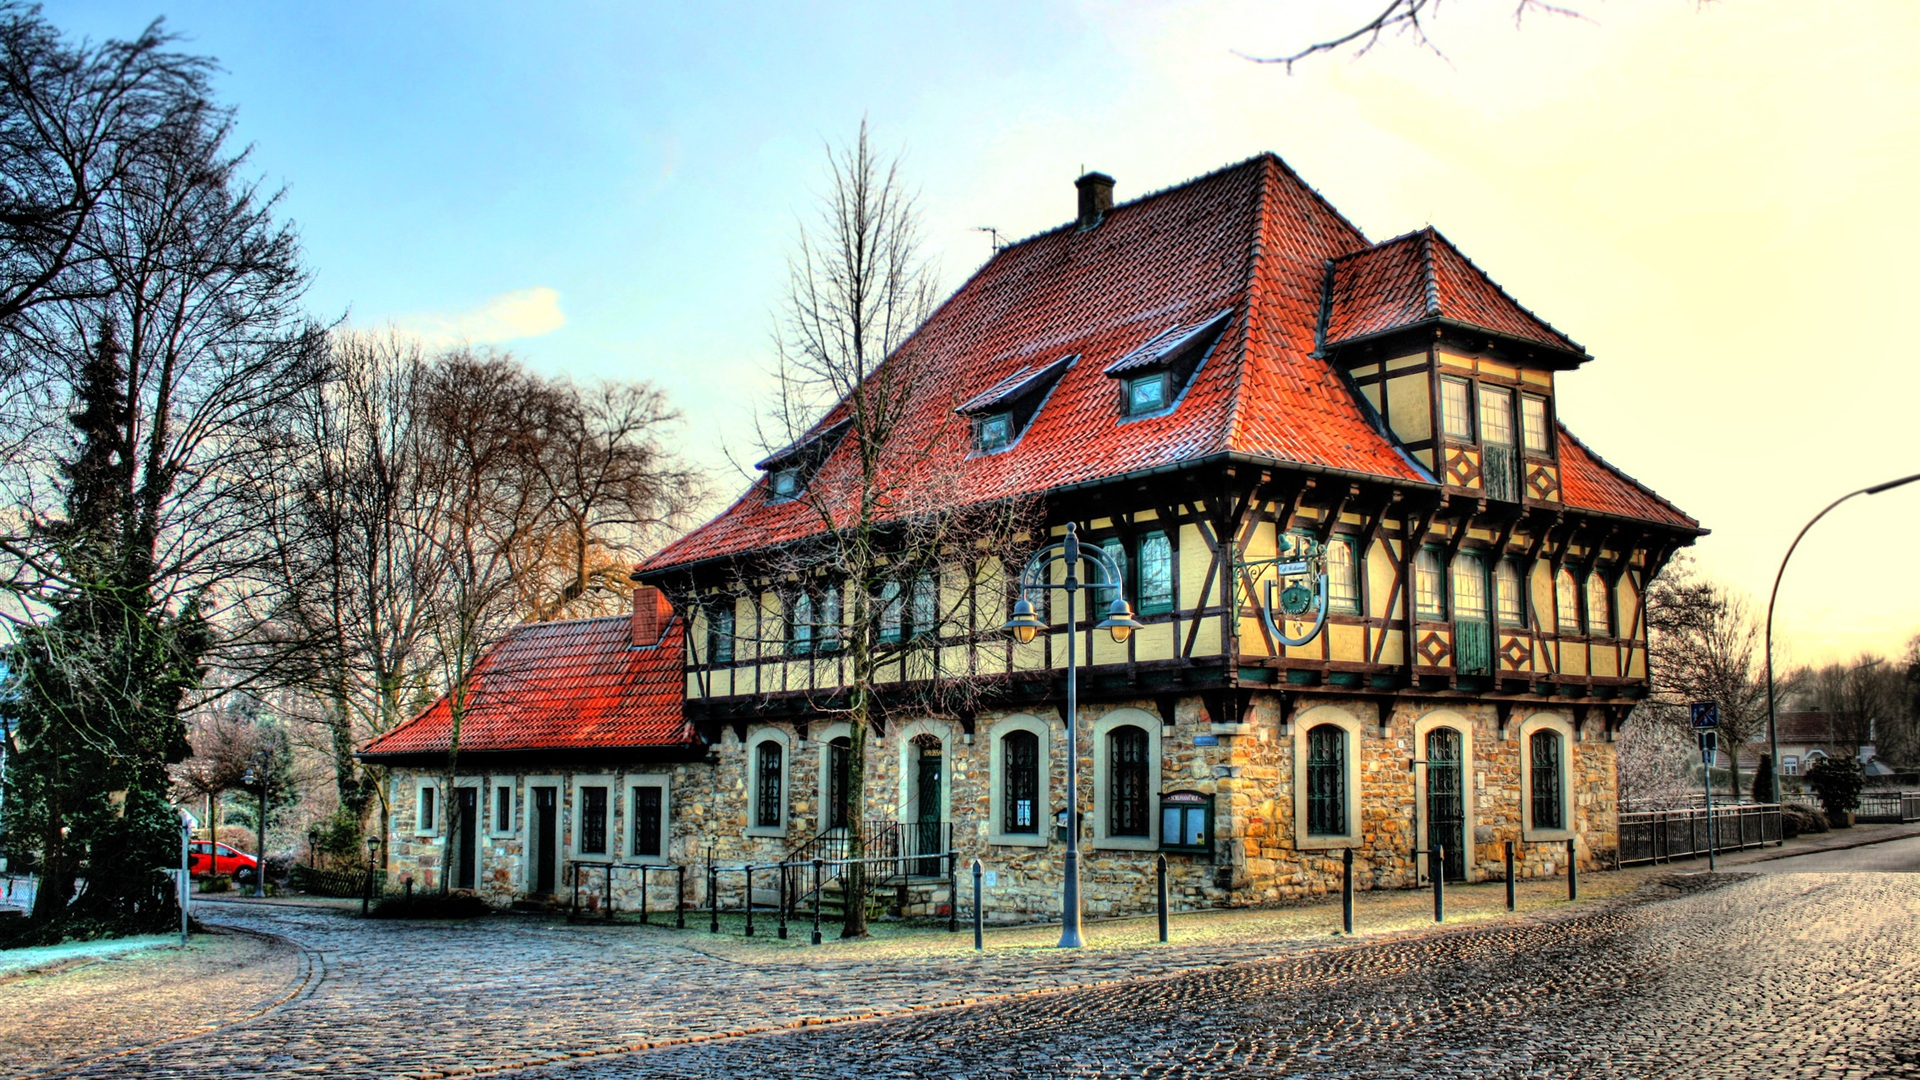 wallpaper steinfurt house in germany 2560x1600 hd picture image